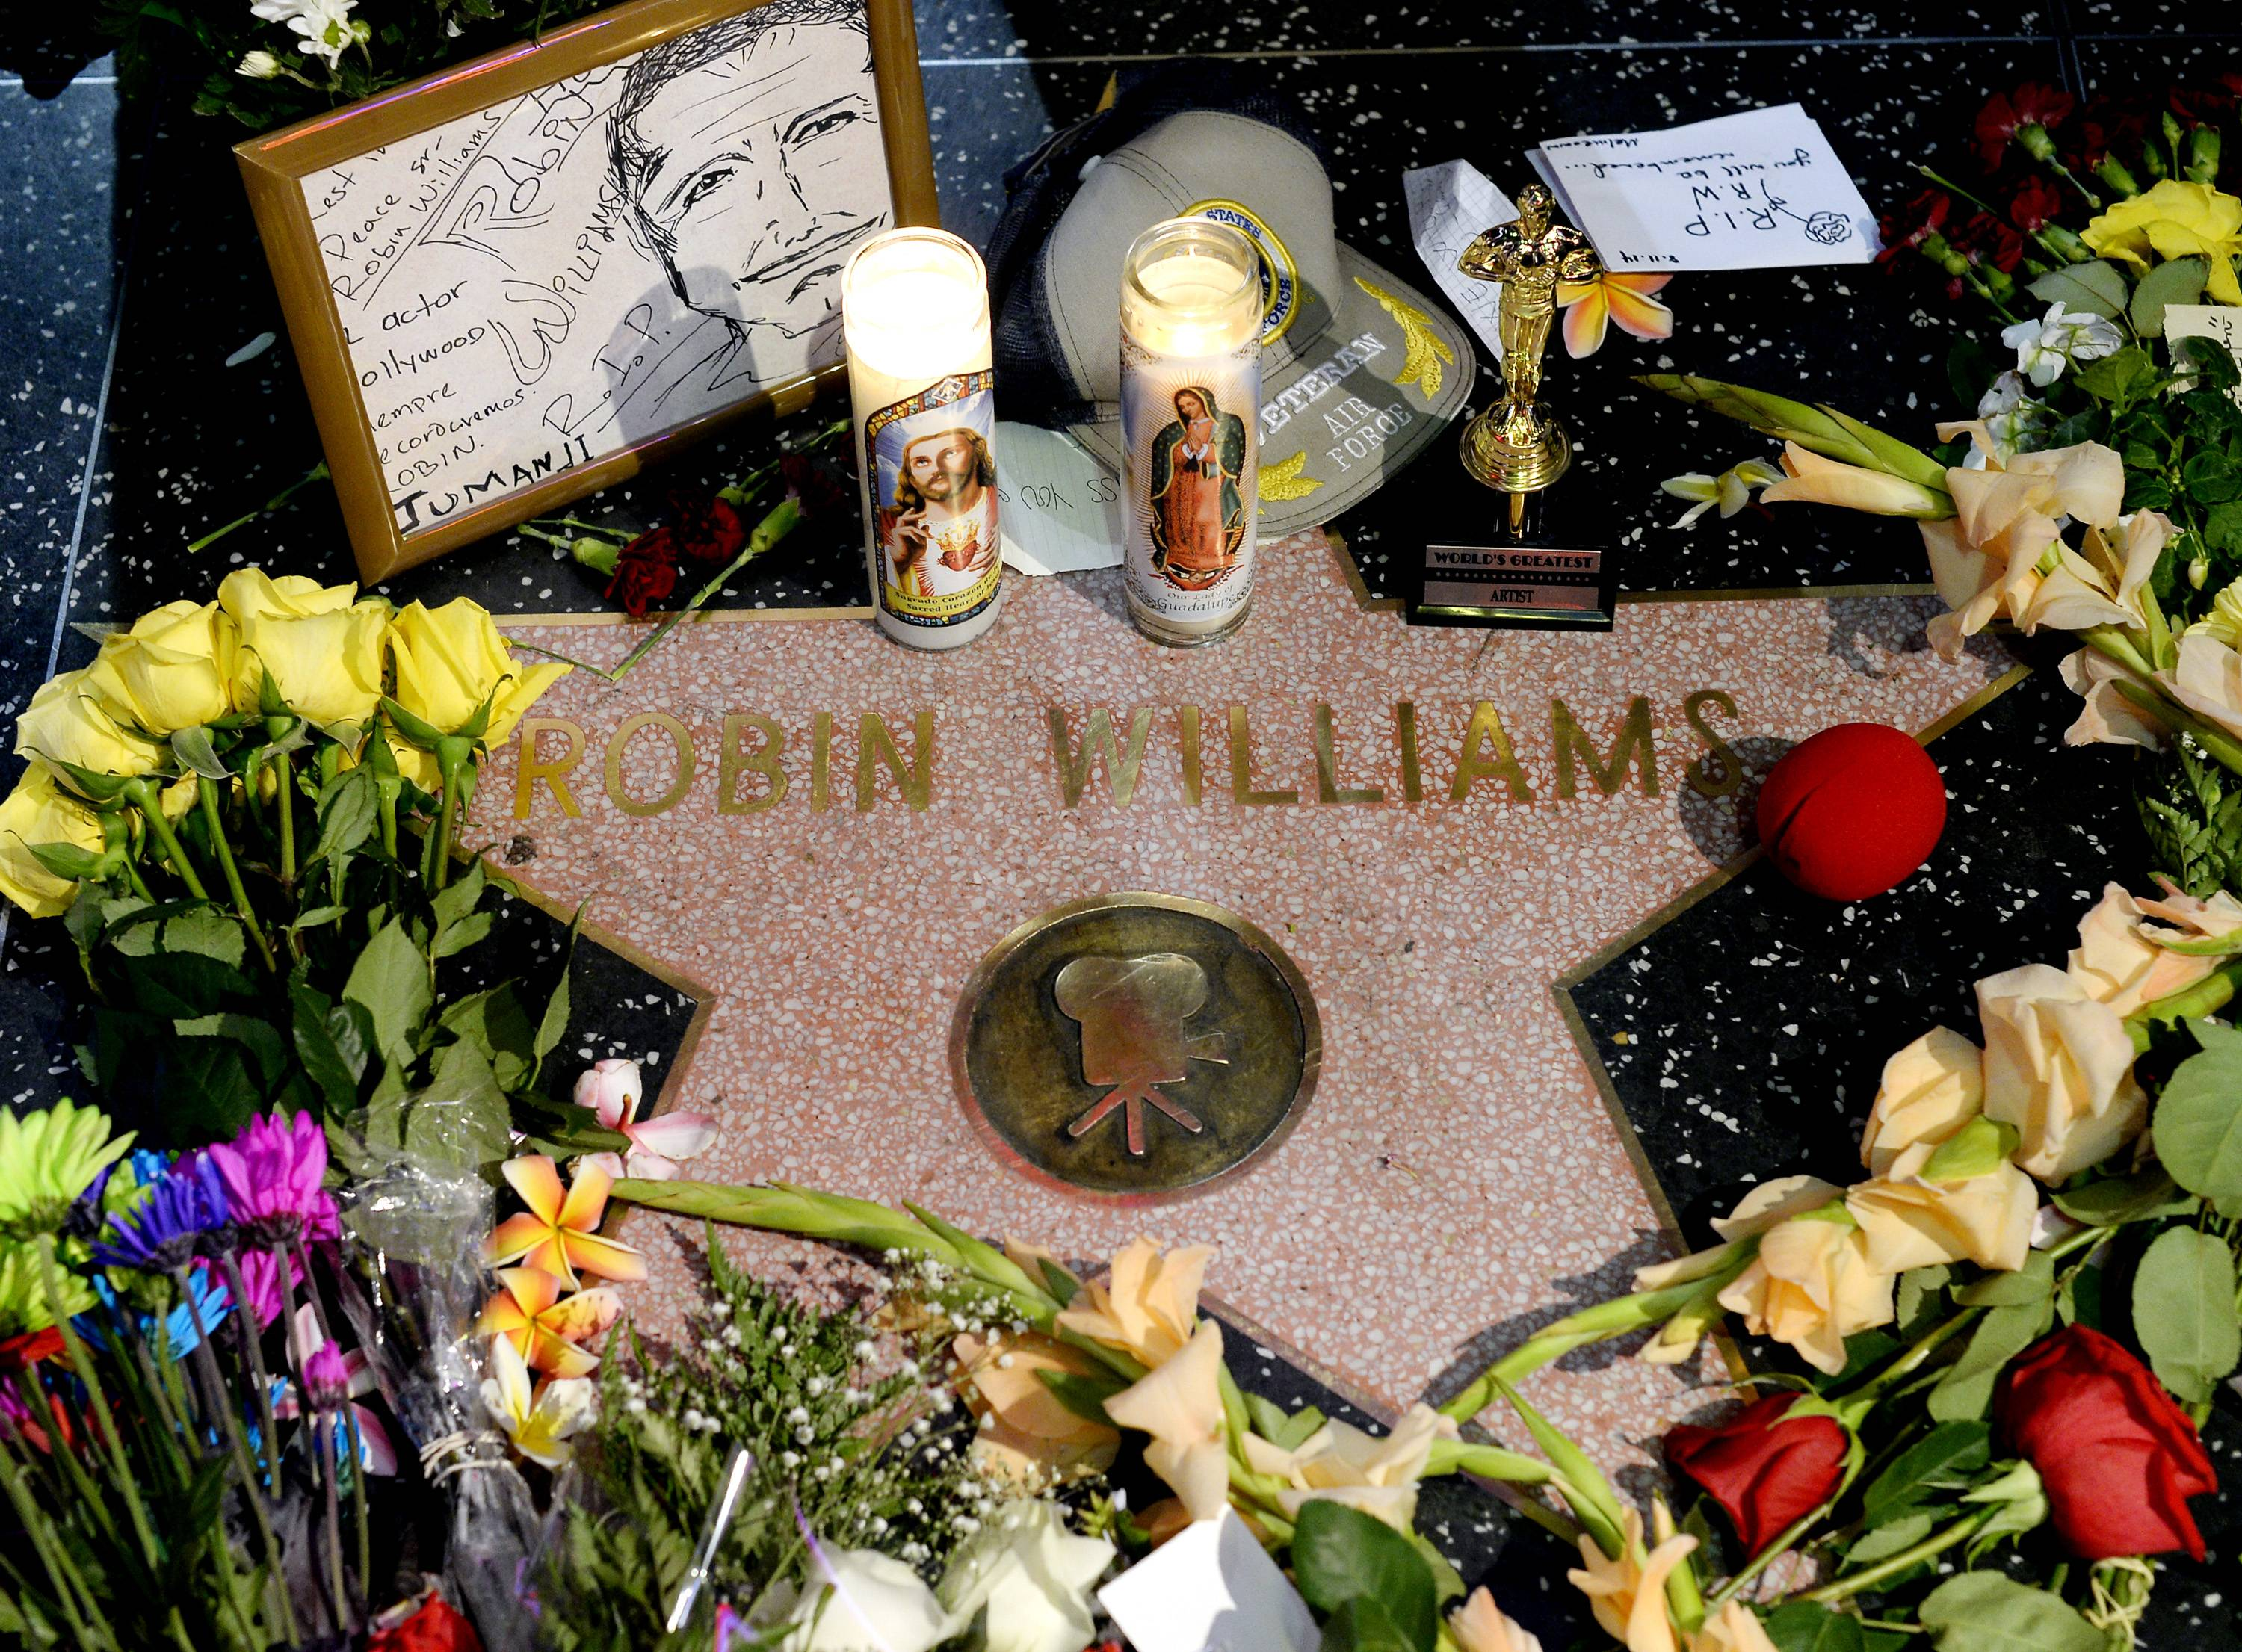 Where to go for help: Robin Williams' death inspires calls